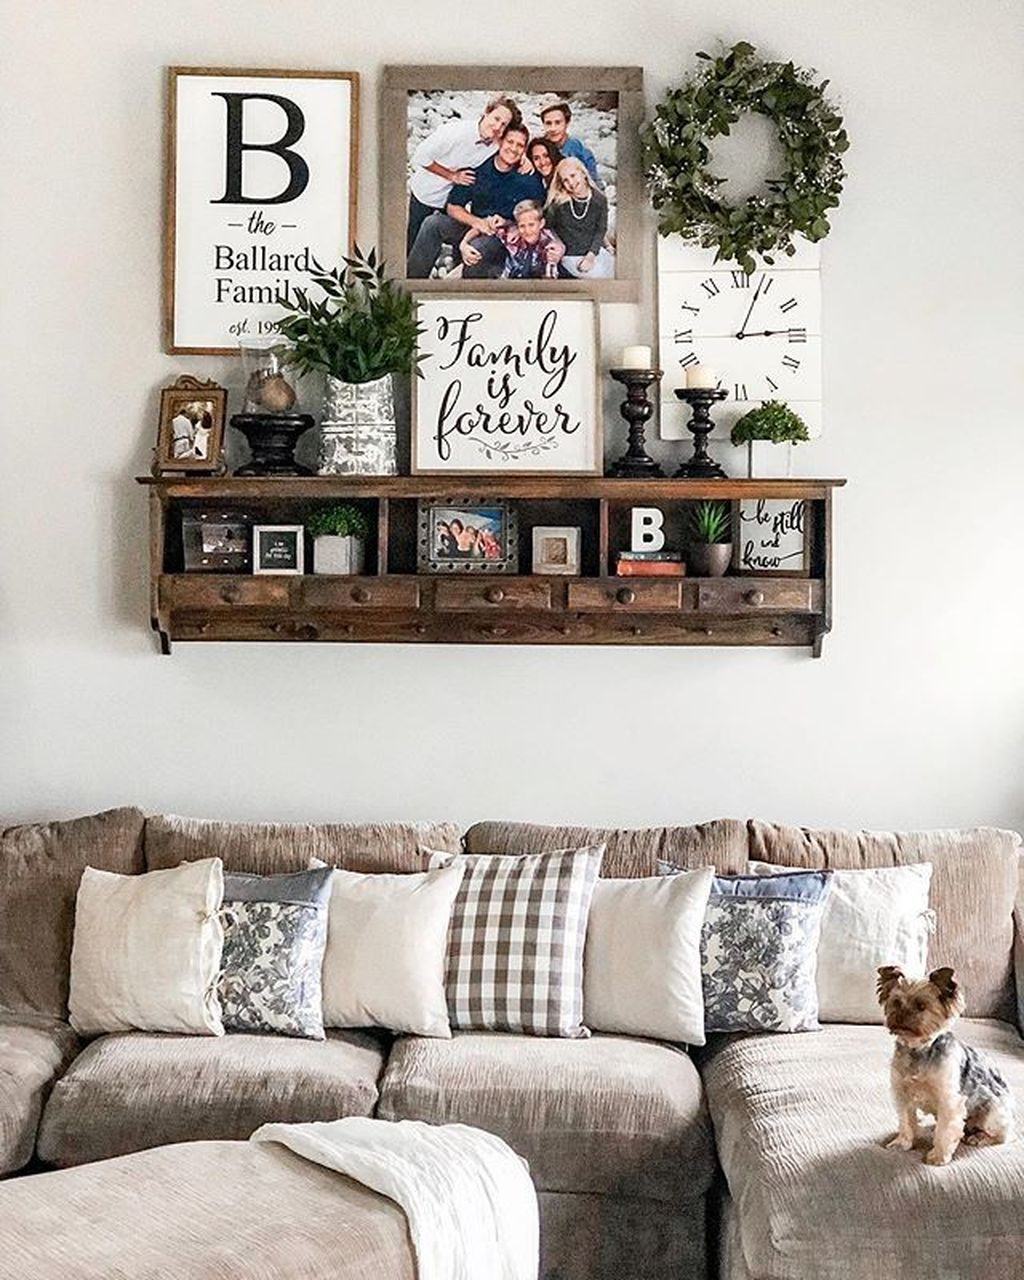 Admirable Farmhouse Living Room Decor Ideas 20